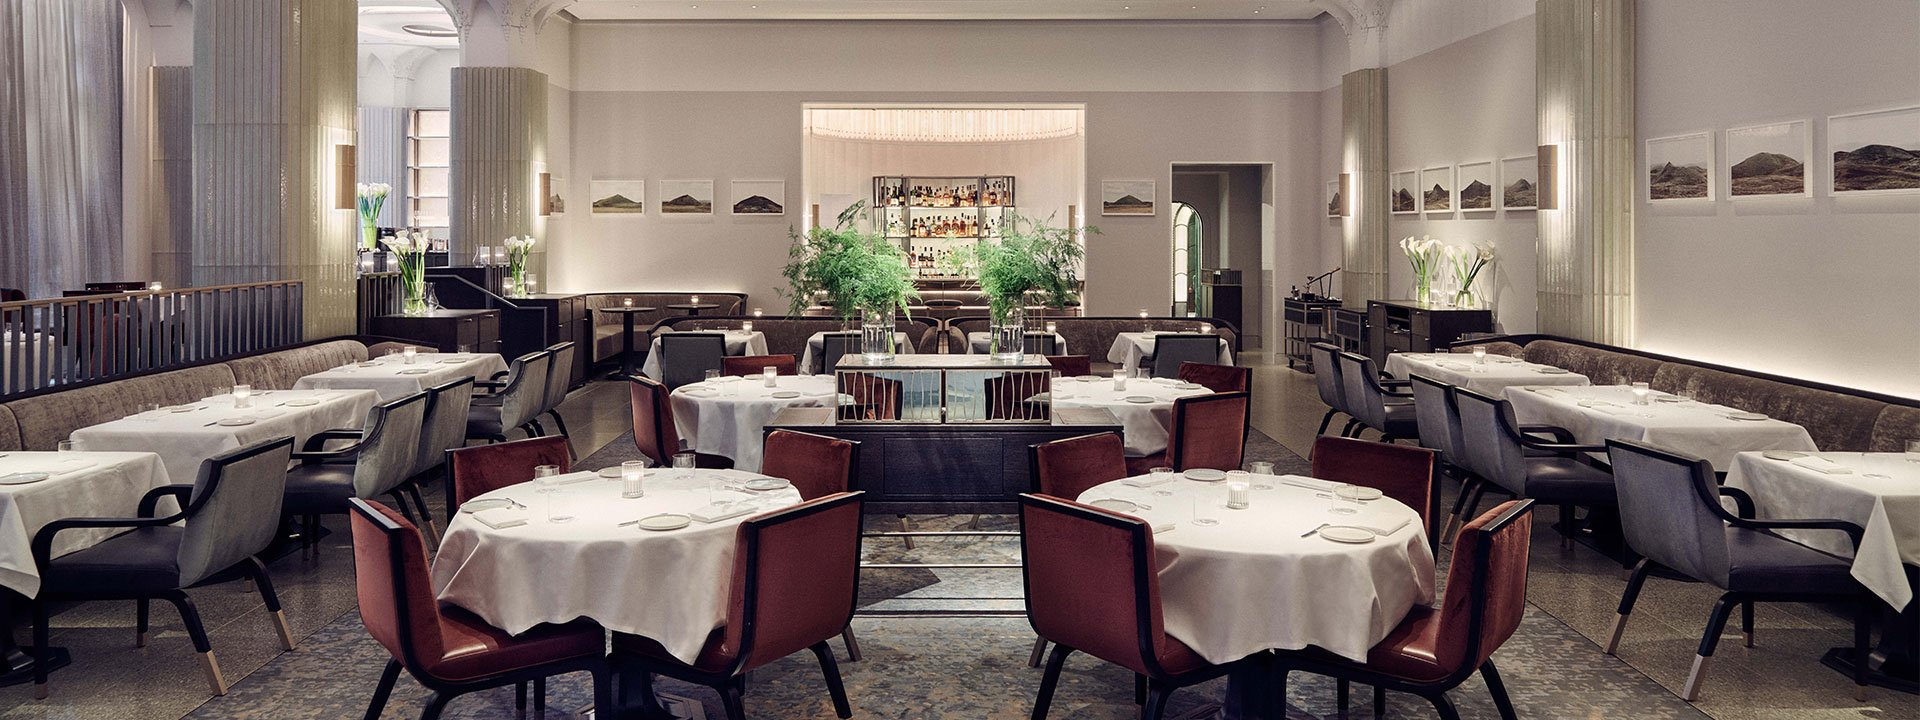 Interior of fine dining restaurant Davies and Brook at Claridge's in Mayfair